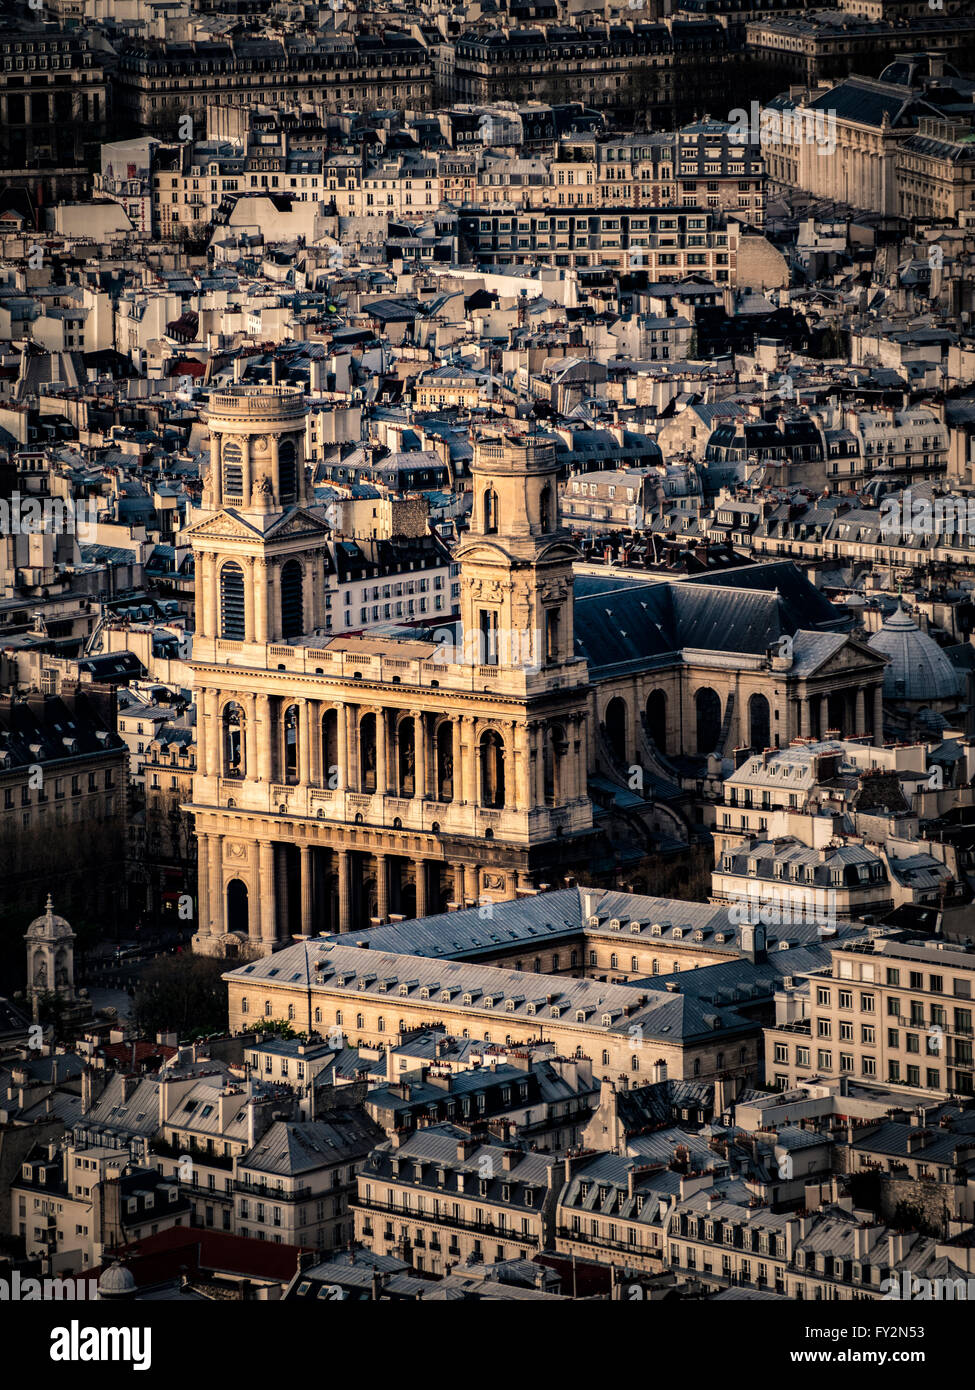 Aerial view of the Church of Saint-Sulpice, Paris, France. Stock Photo